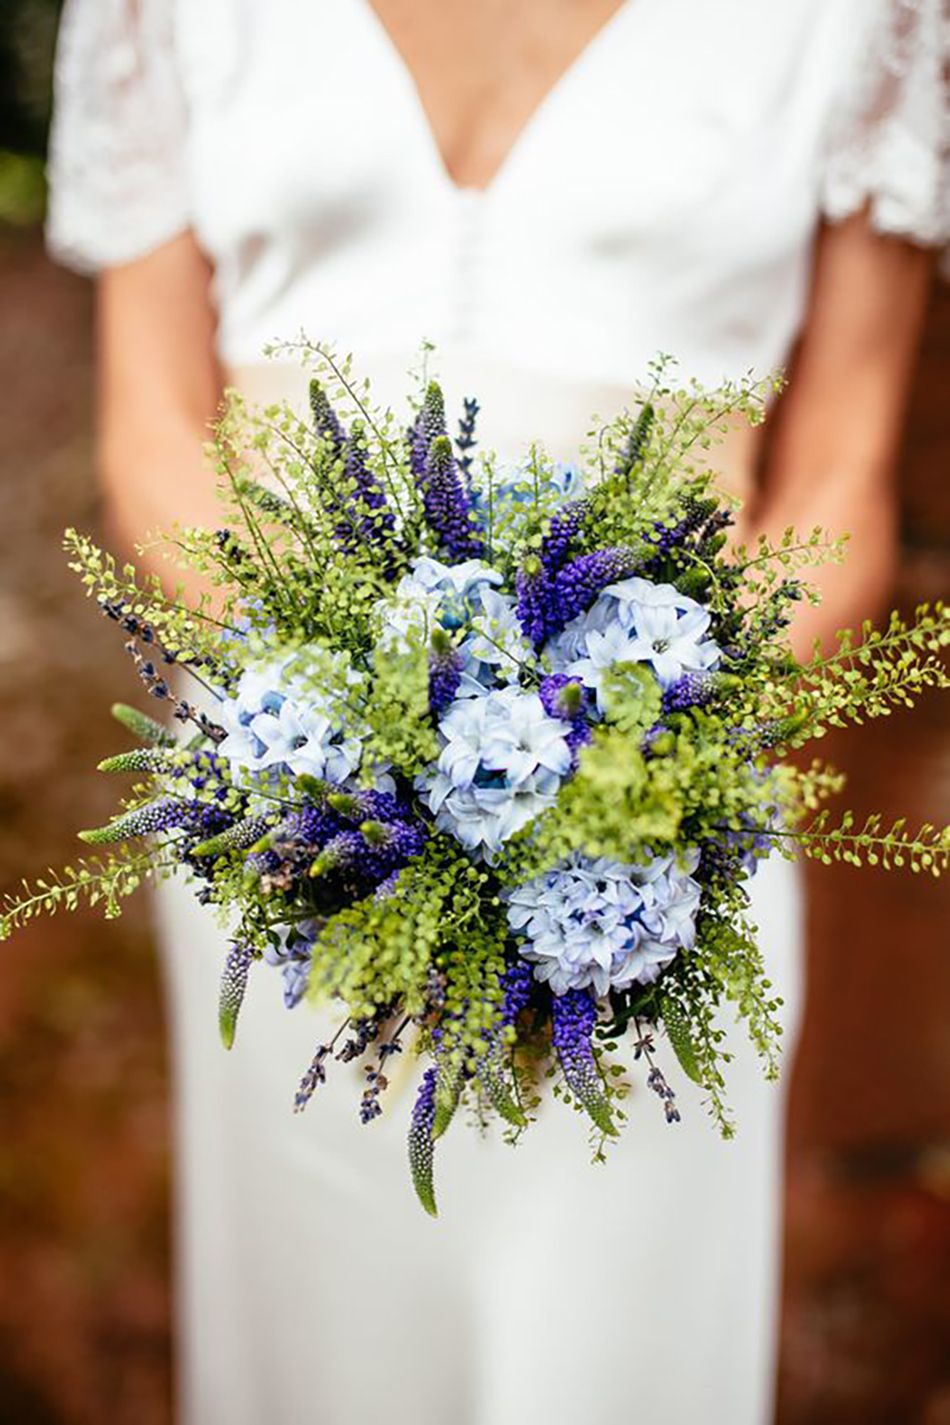 Blue hyacinth bouquet for a wedding with images